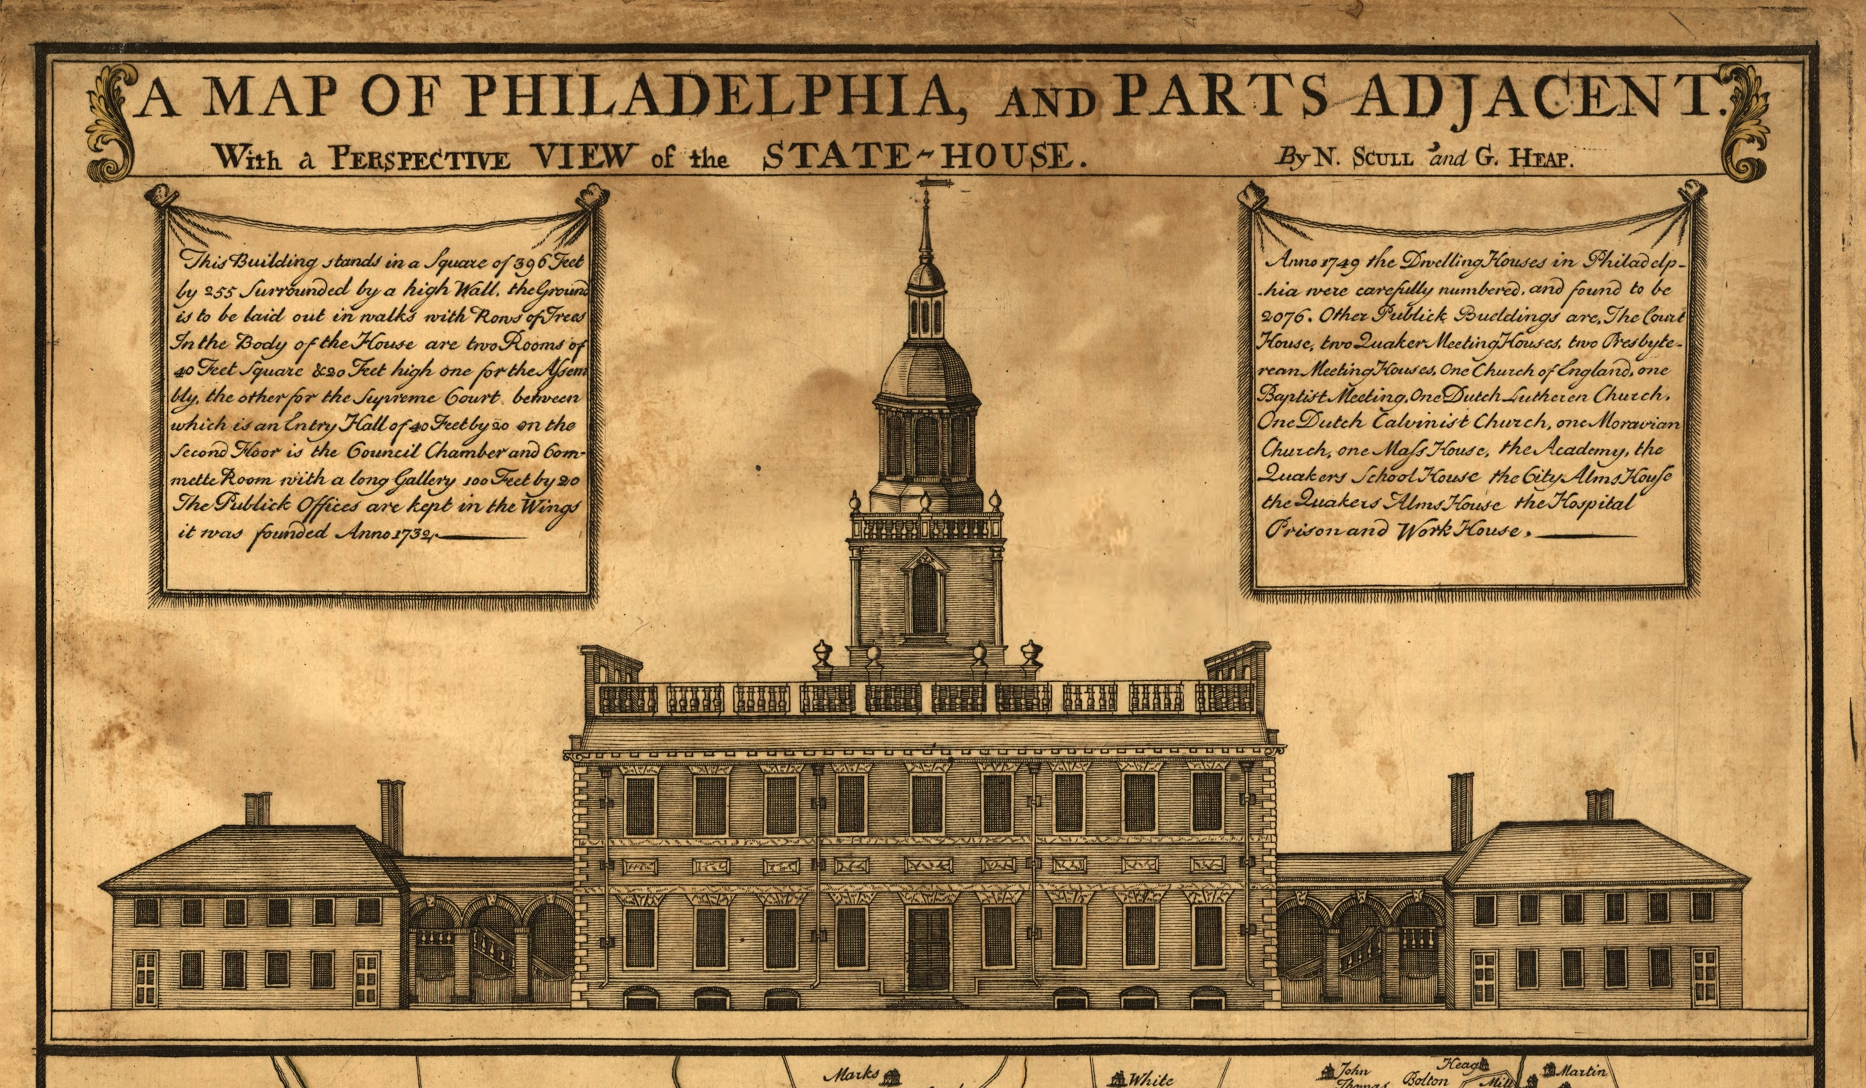 Detail of north elevation of Pennsylvania State House (Independence Hall), from 1752 map of Philadelphia, Pennsylvania. The image shows the original bell tower, which lacked a clock.